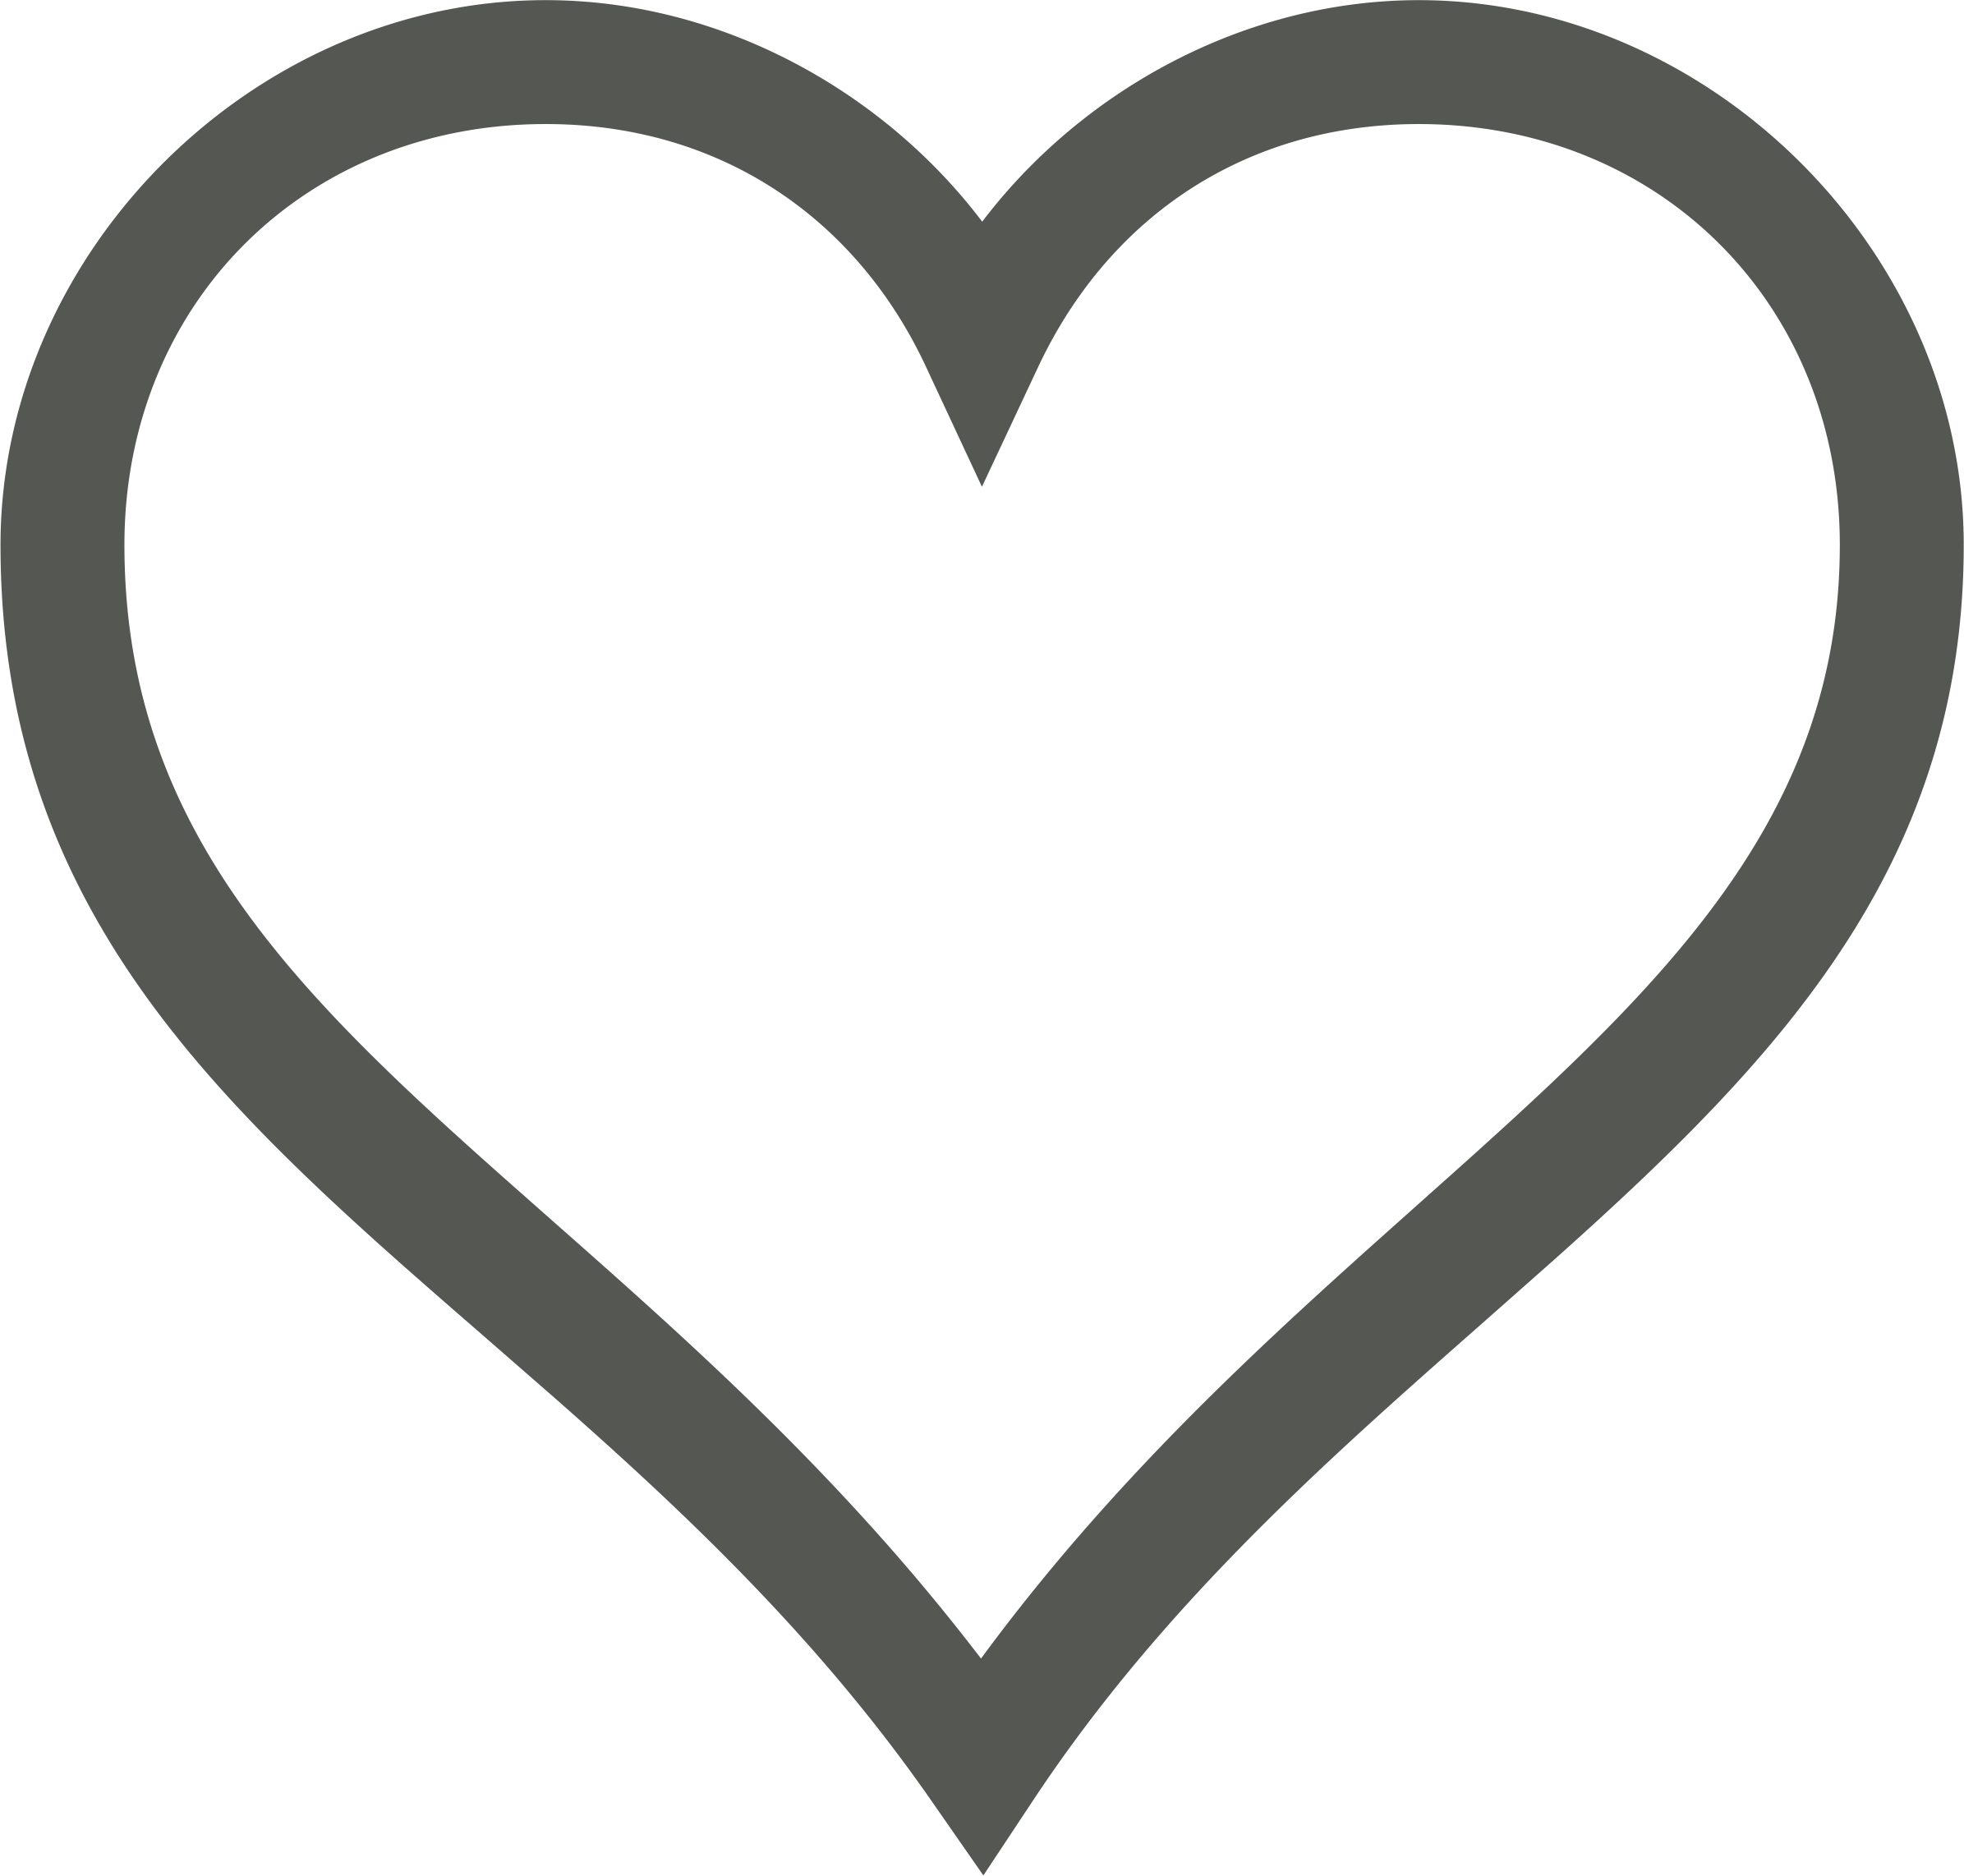 Transparent heart clipart black and white - Two Hearts Clipart Black And White - Emoji Heart Coloring Pages